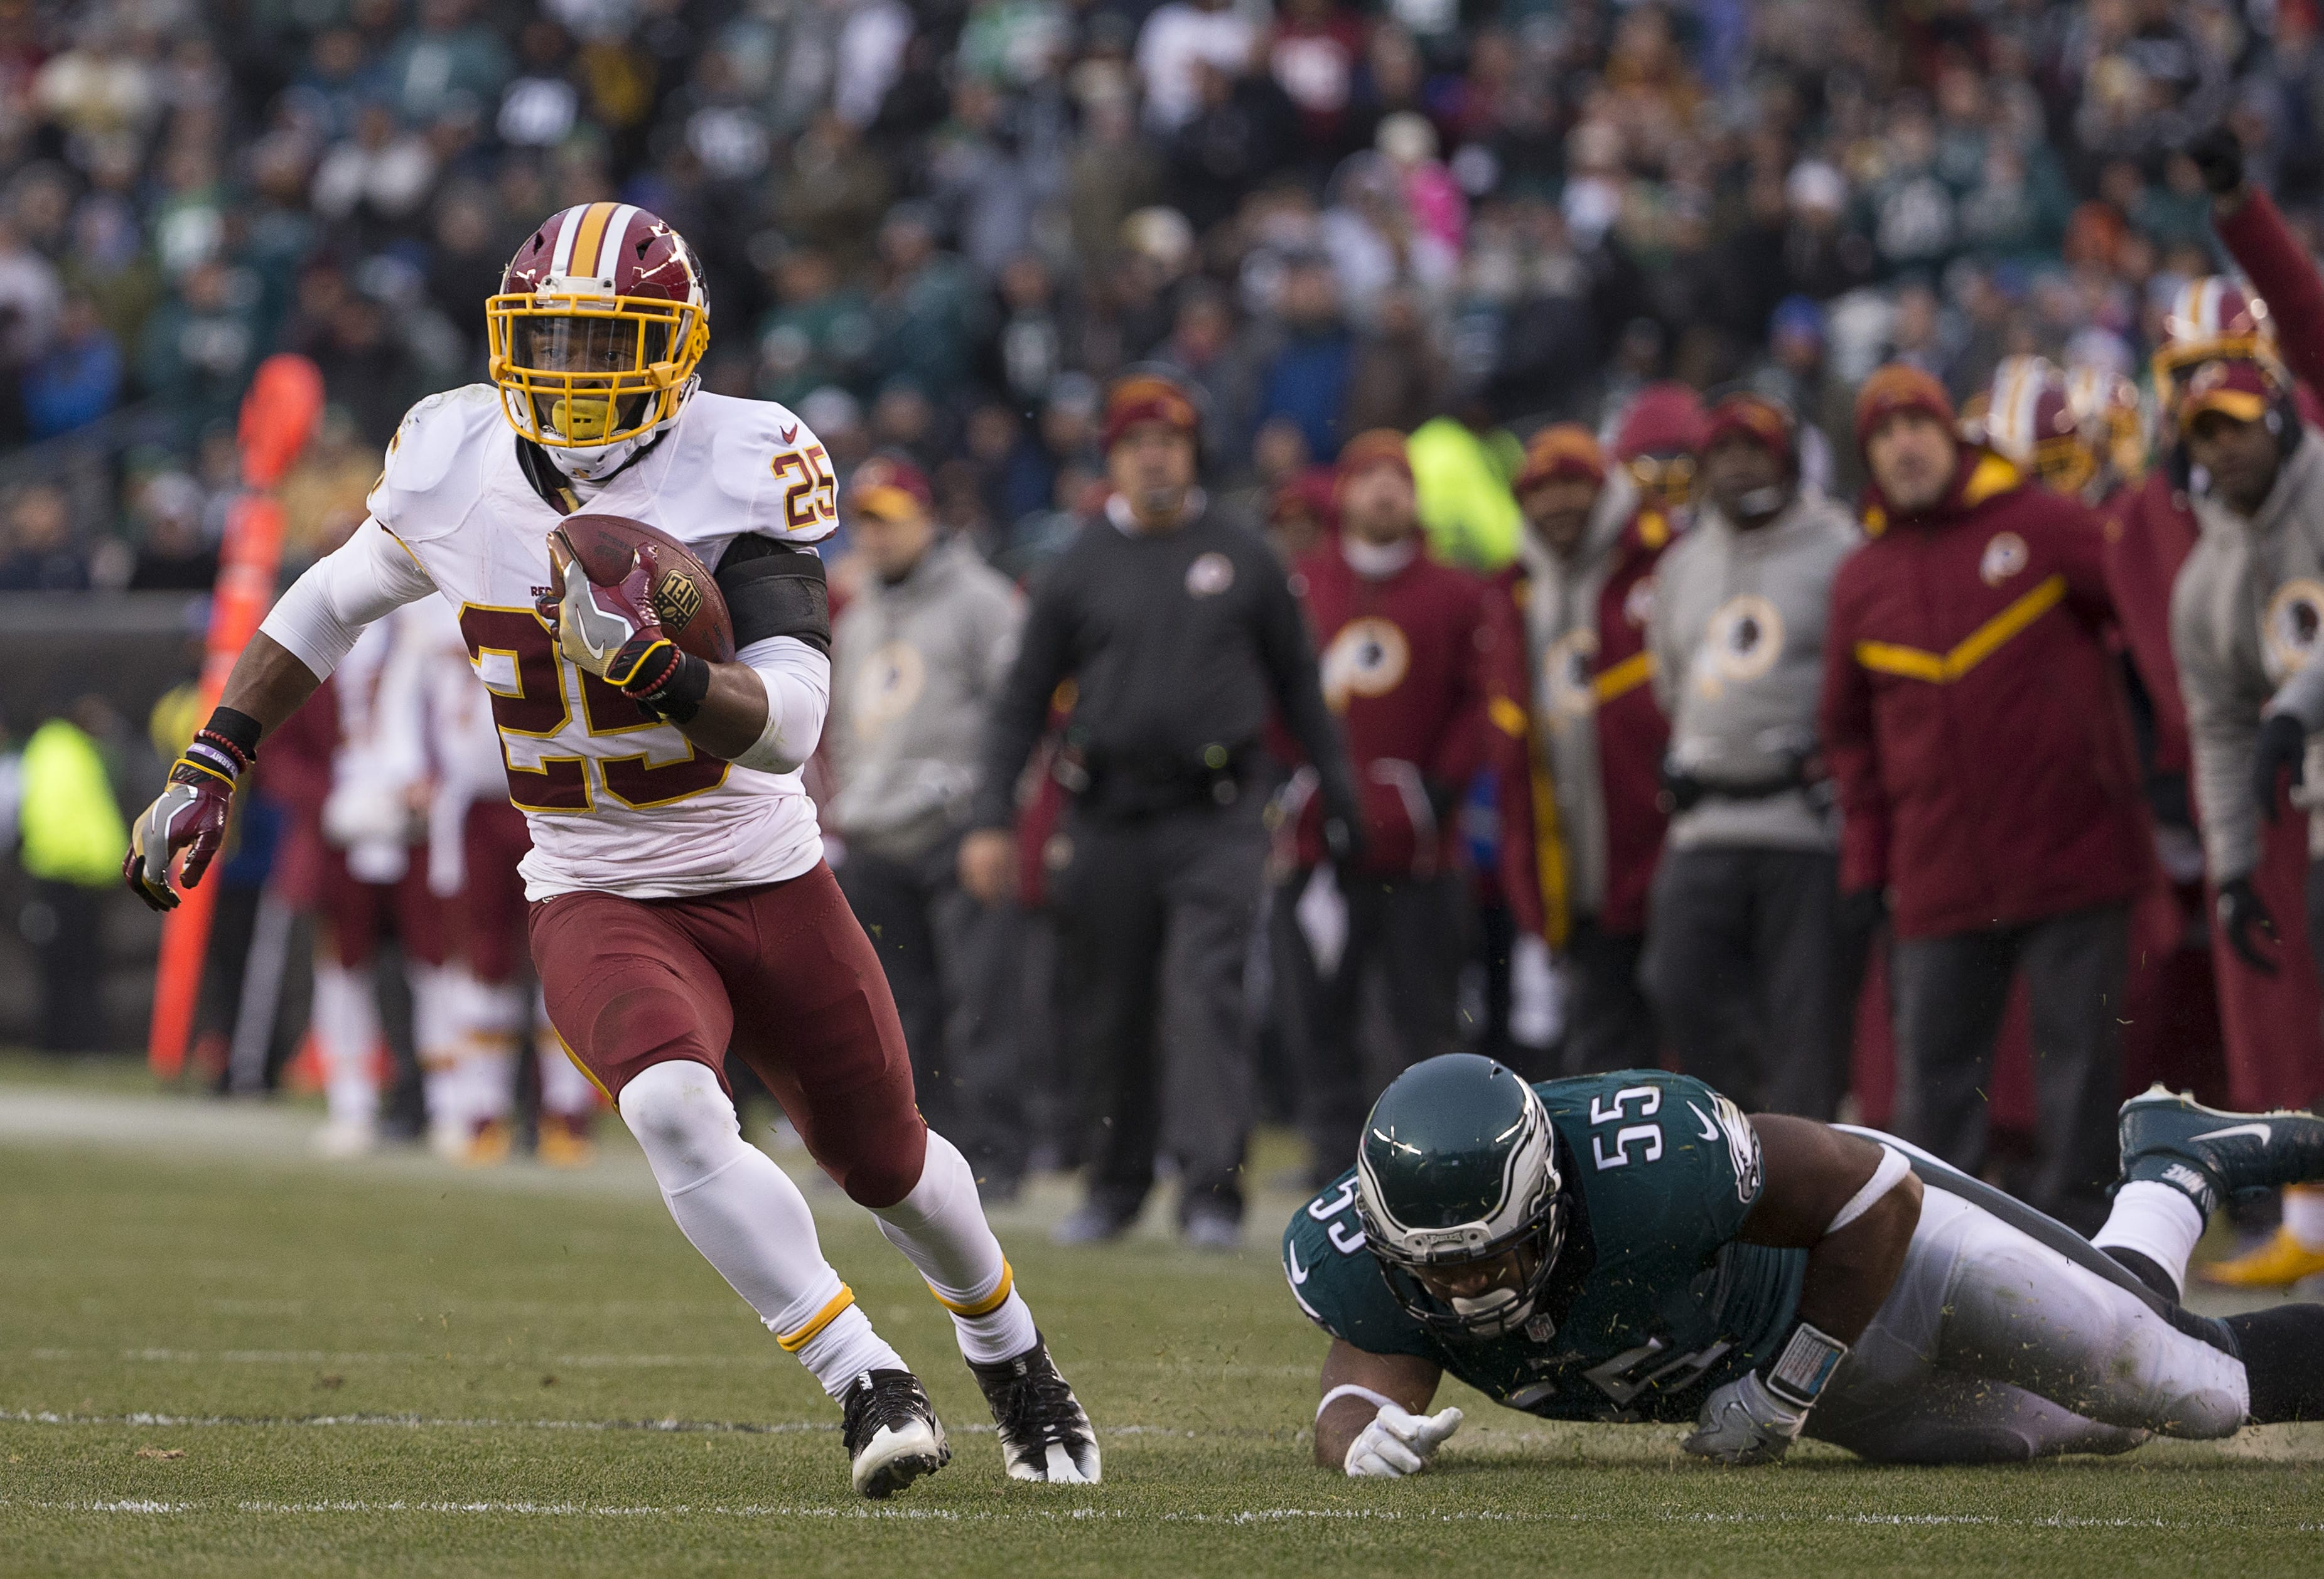 Buy Washington Redskins Football Tickets for Sale Online